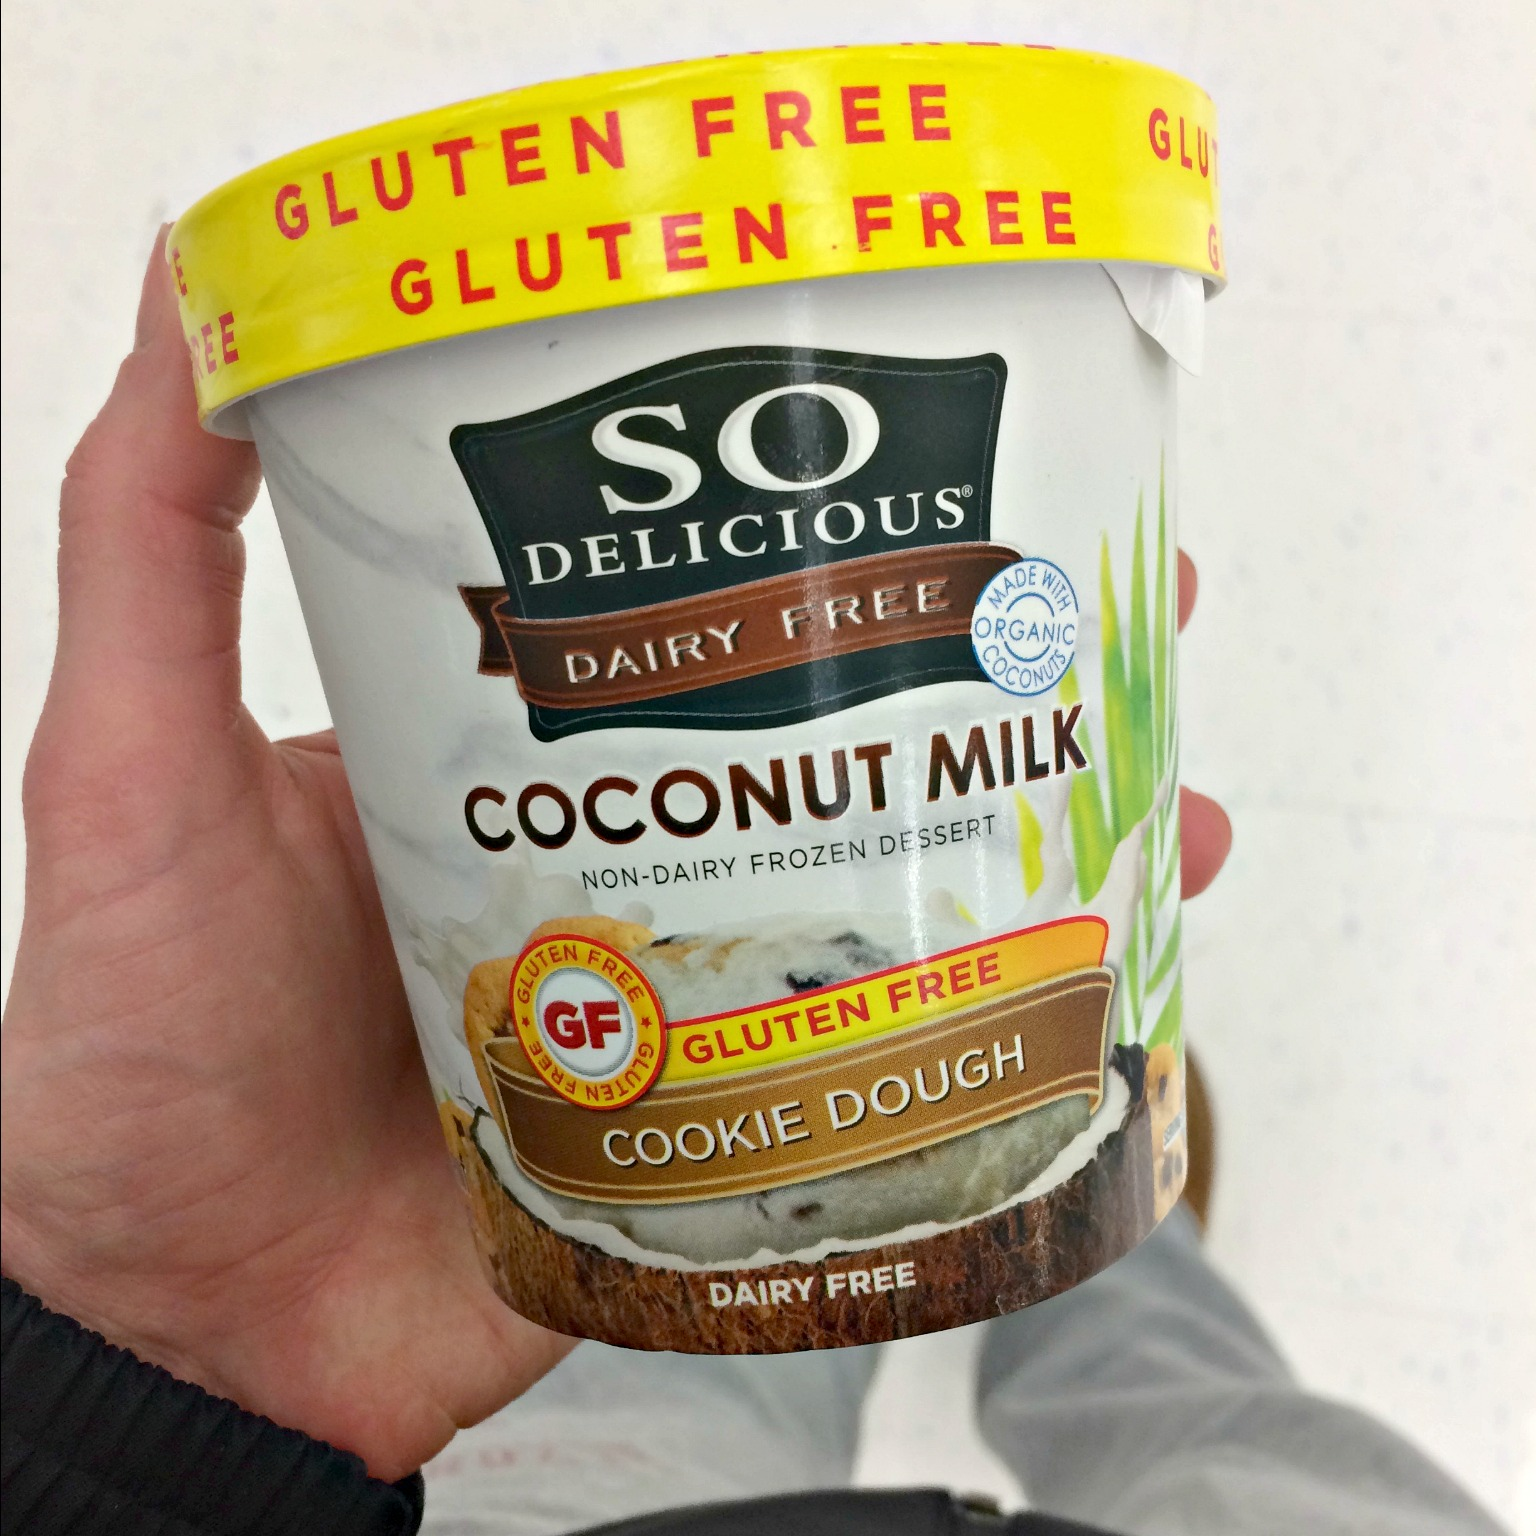 So Delicious Dairy Free Coconut Milk ice cream